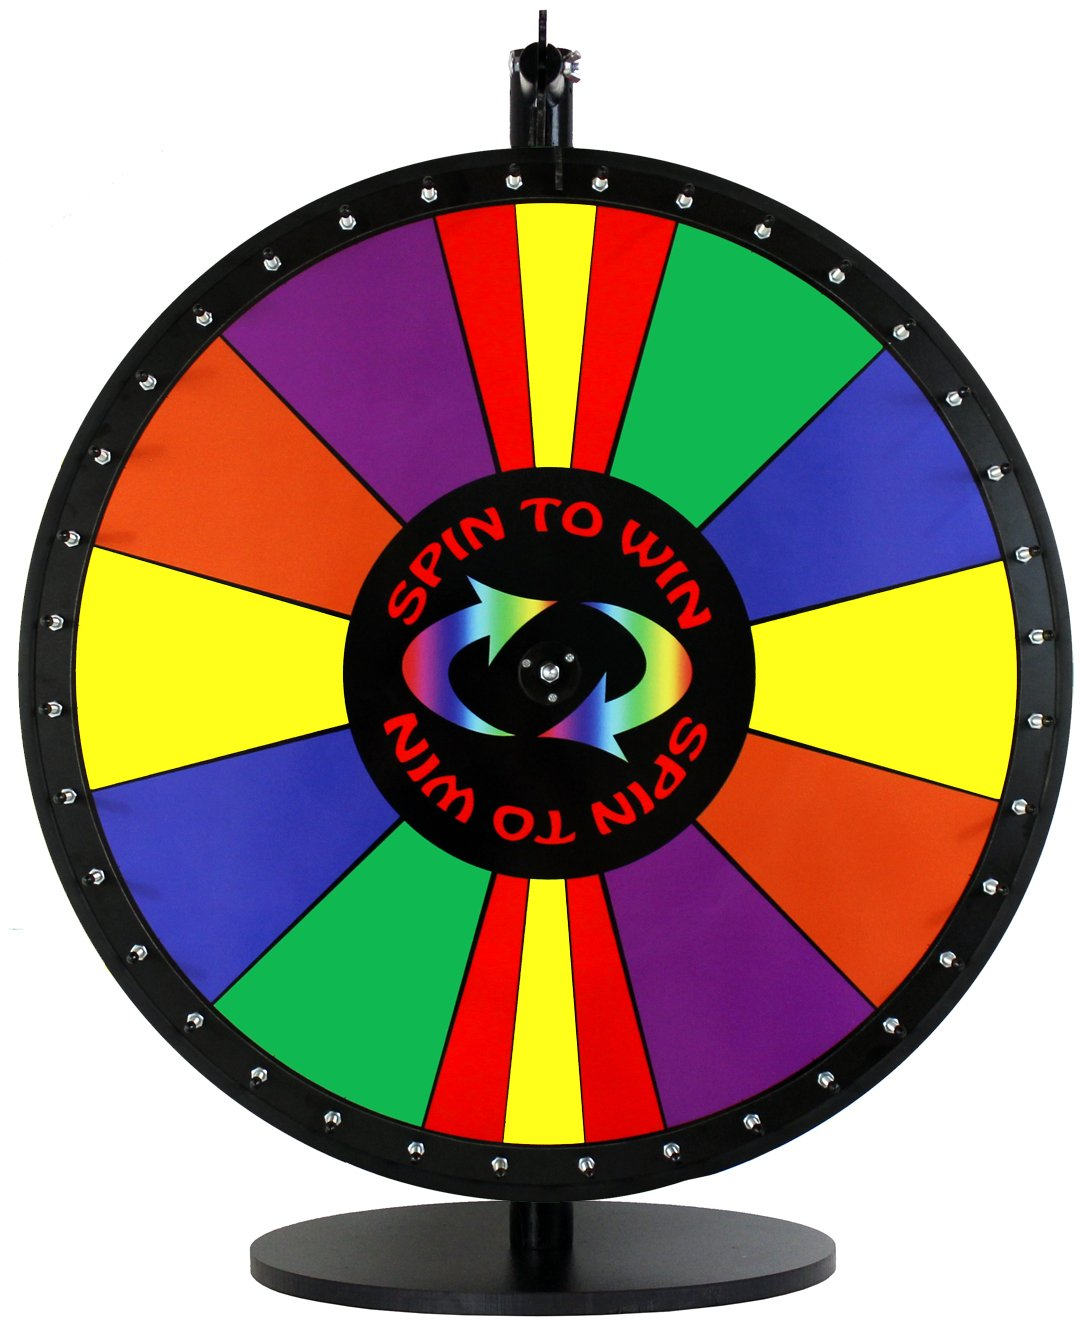 Amazon 24in spin to win dry erase prize wheel with special amazon 24in spin to win dry erase prize wheel with special sections casino prize wheels sports outdoors maxwellsz